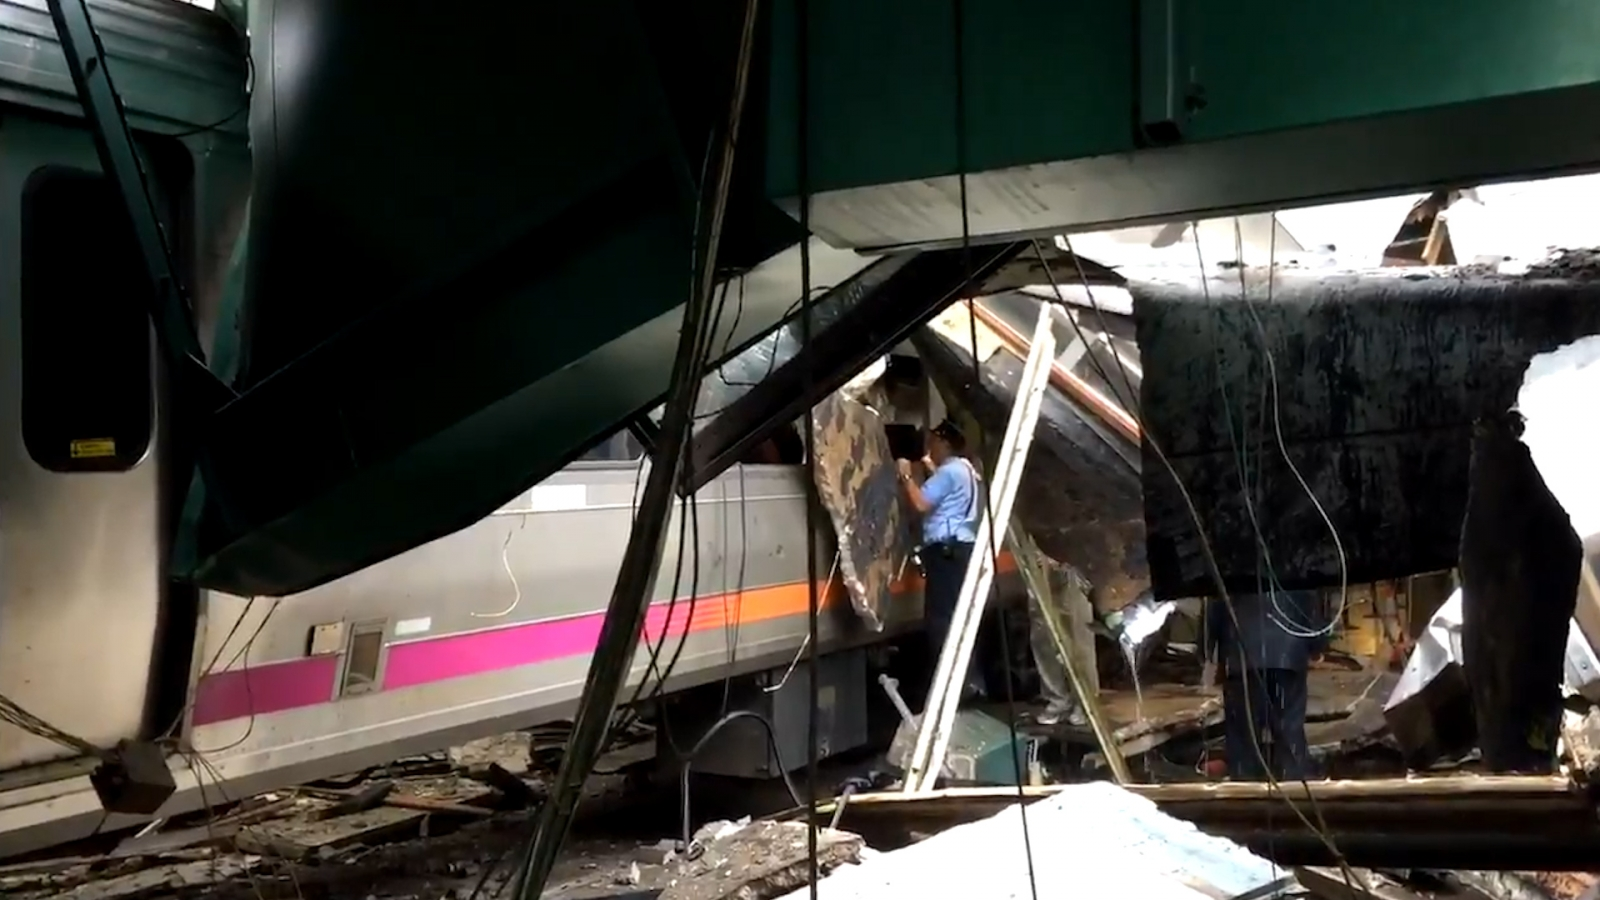 Hoboken train crash video from inside